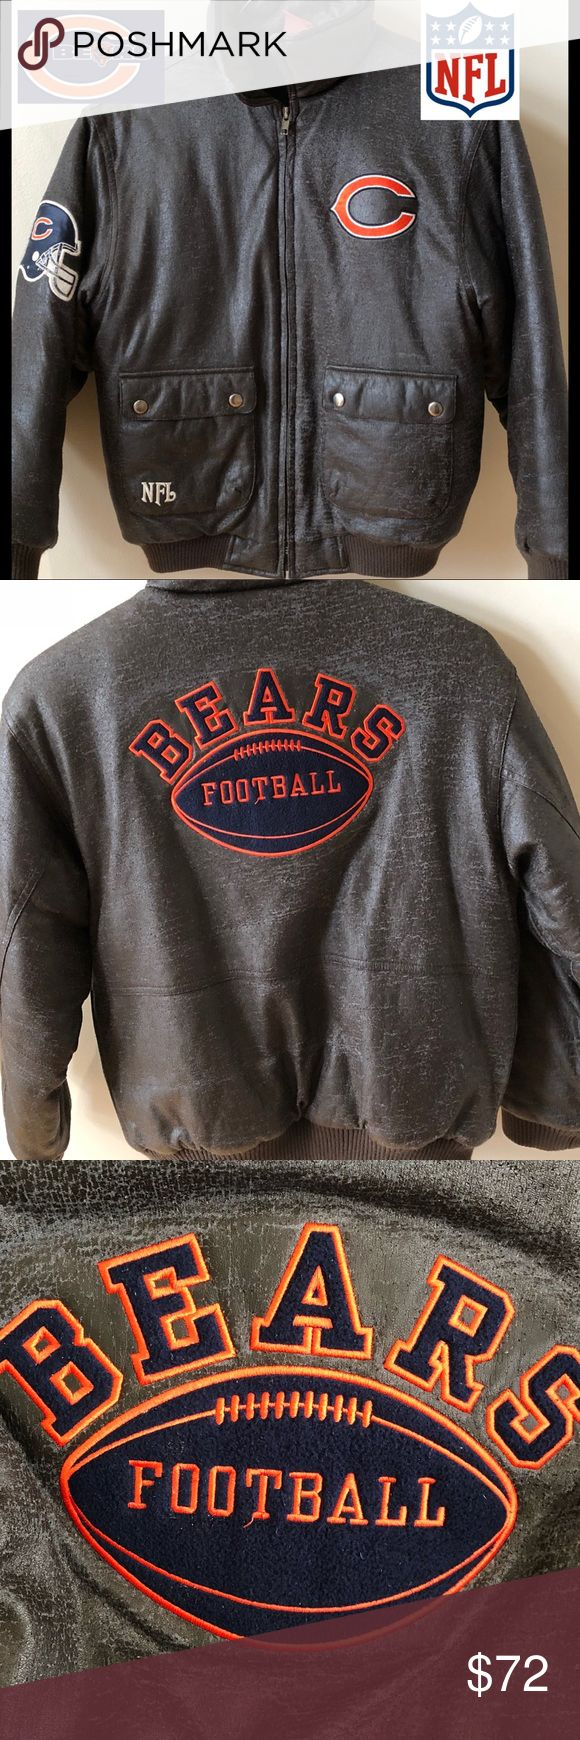 CHICAGO BEARS BOYS BOMBER JACKET🐻🧡💙 VINTAGE CHICAGO BEARS BOYS BOMBER JACKET, ADORABLE for your little guy!!! So warm. Zipper needs repair (see pic) but still zips perfectly. Has been very loved but still has a lot of life in it for those young 💙🧡BEARS FANS🧡💙. (Priced accordingly) Brown faux looking leather w team patches and NFL sewn on sleeve. YOU WILL LOVE THIS GEM!!!!! NFL Other